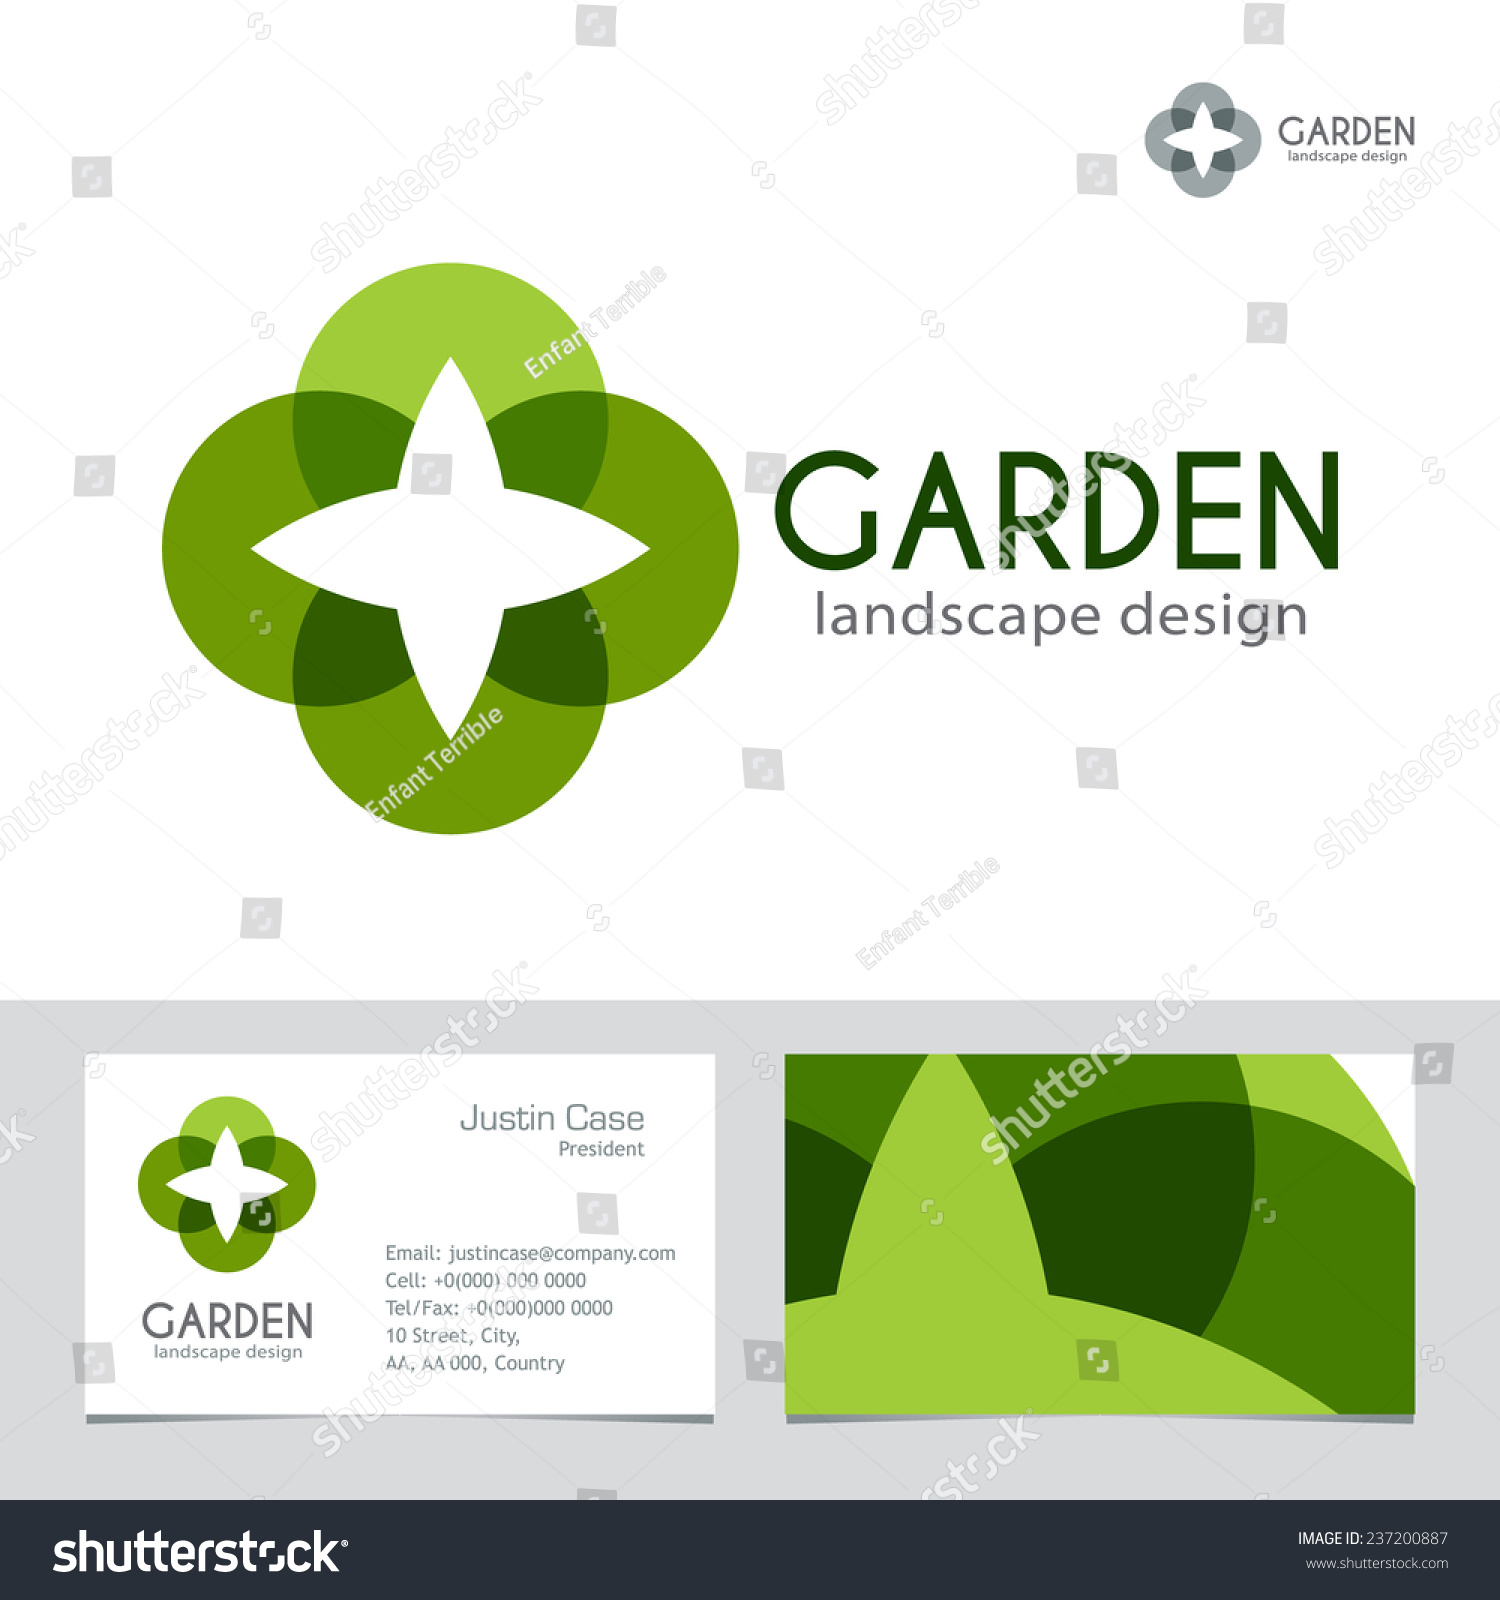 Garden Design Business Cards abstract business sign business card vector stock vector 237200887